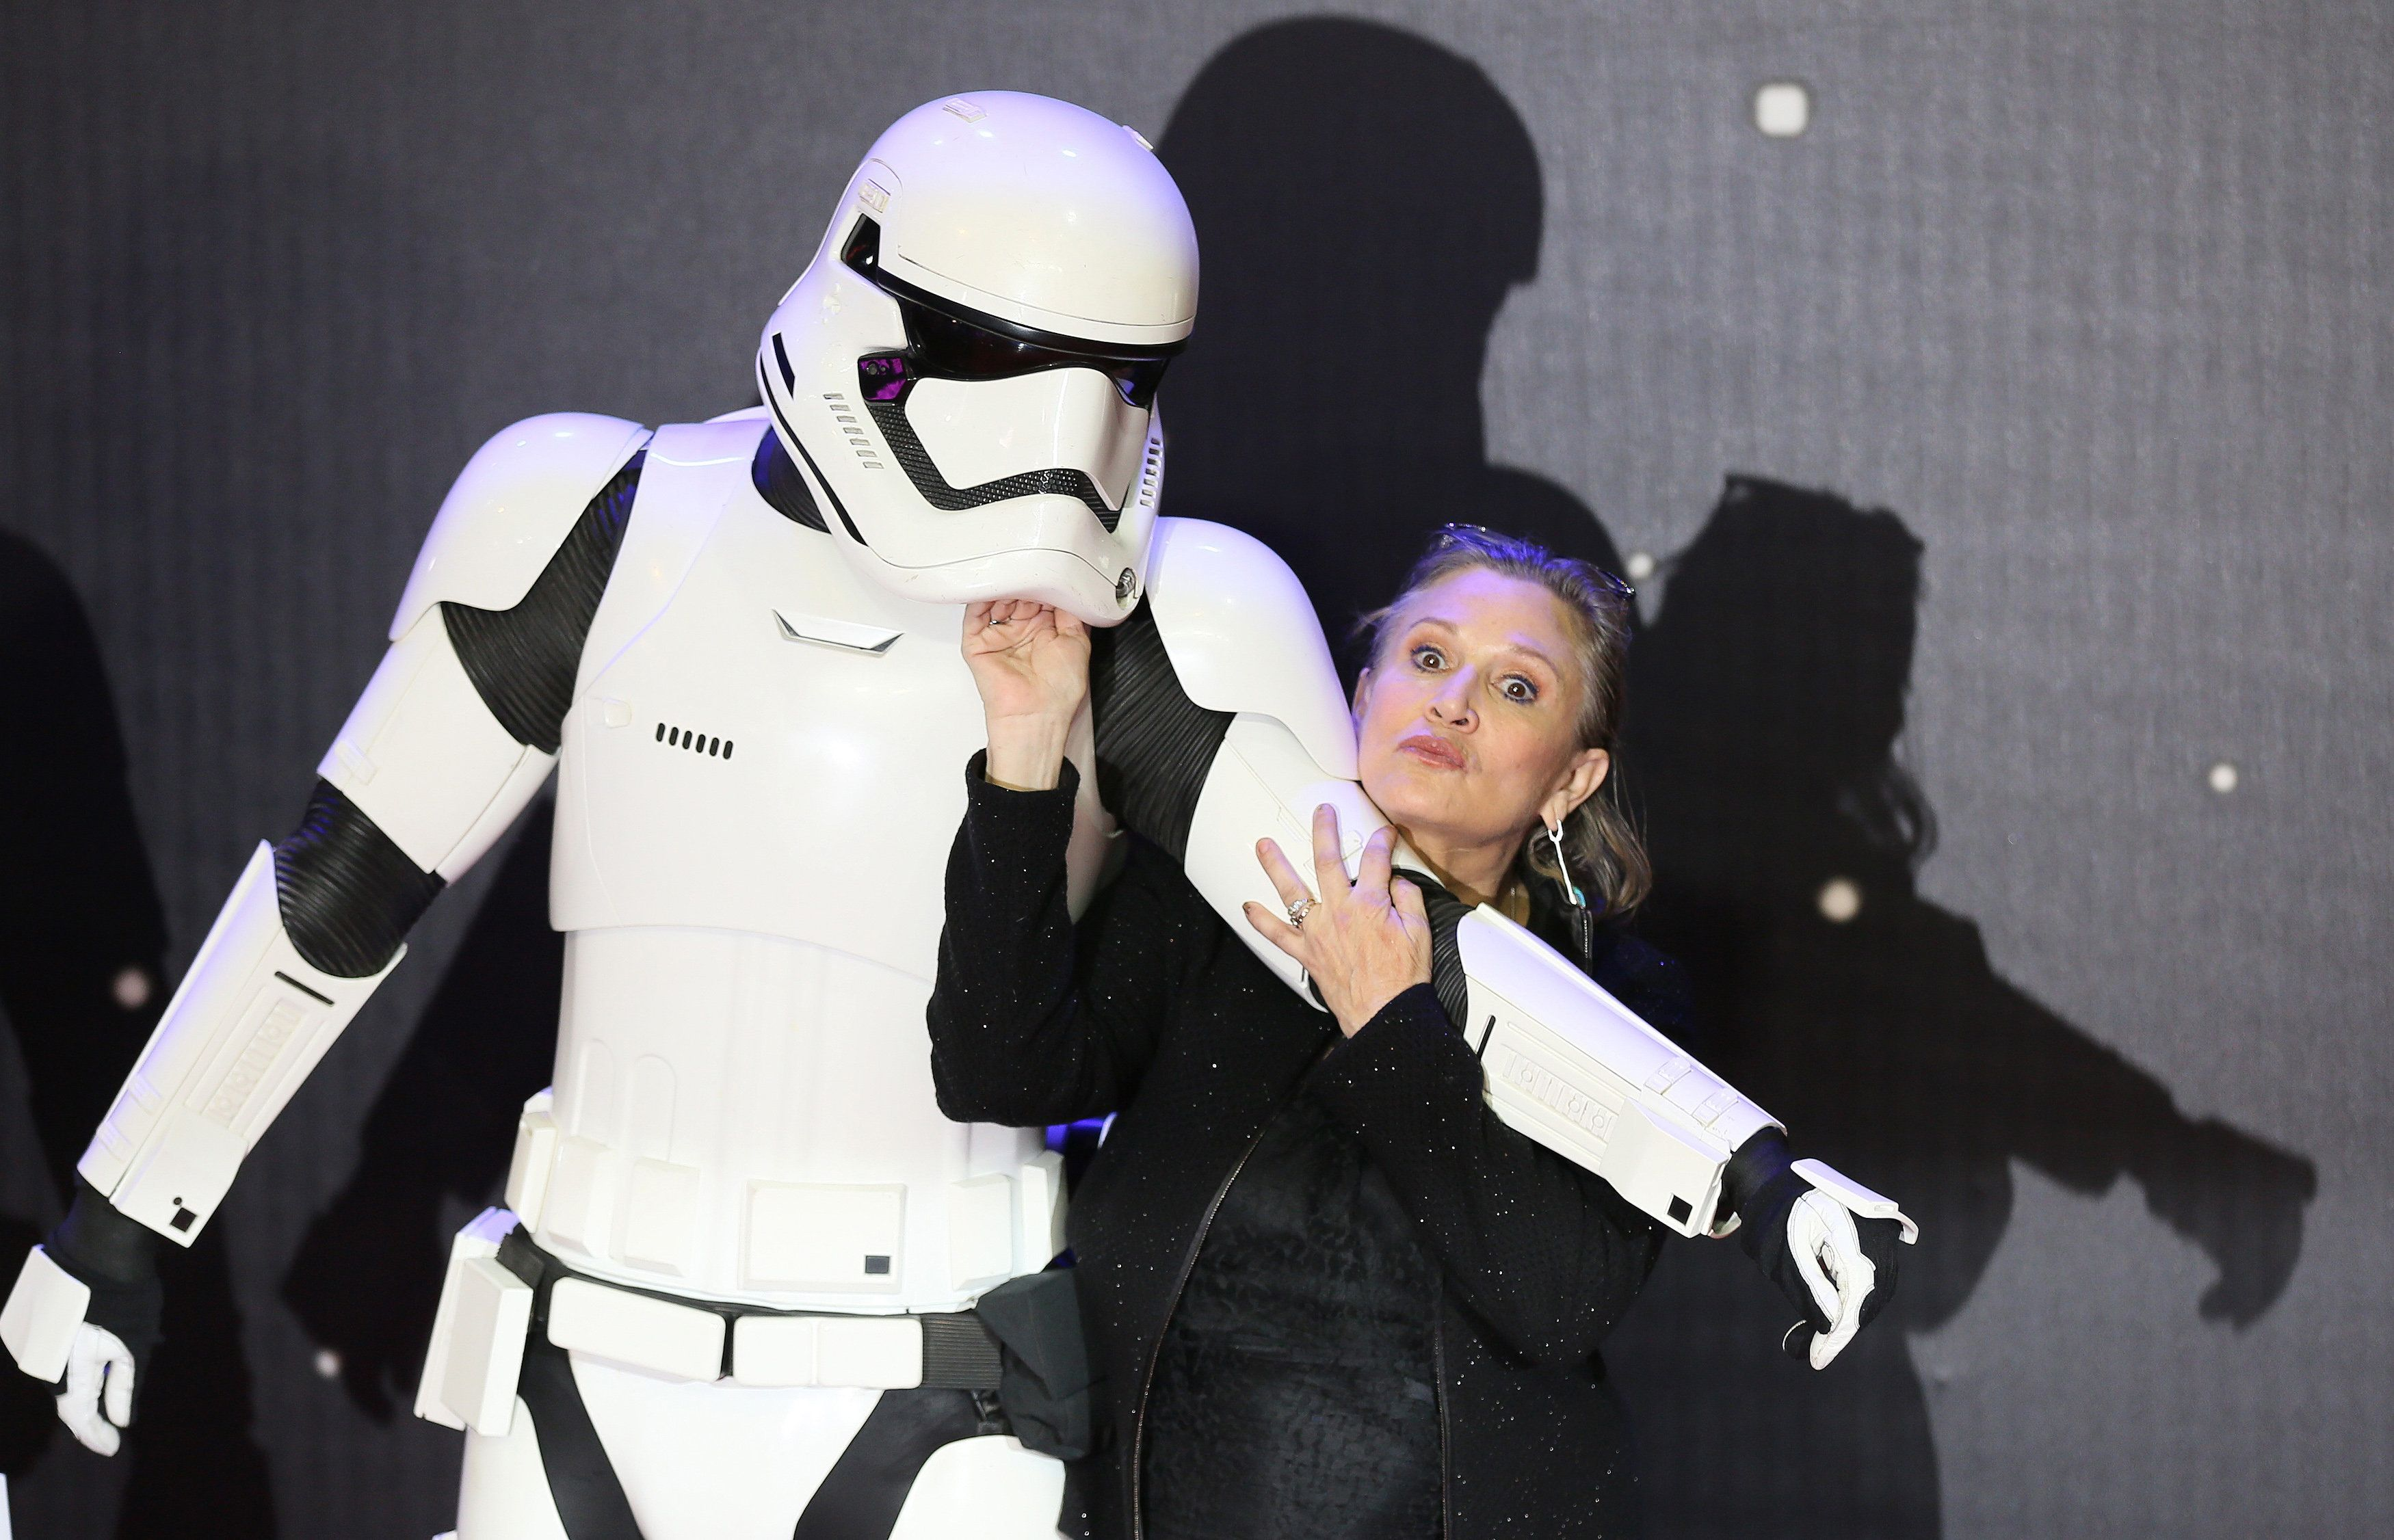 Carrie Fisher wrote some of her funniest The Last Jedi lines